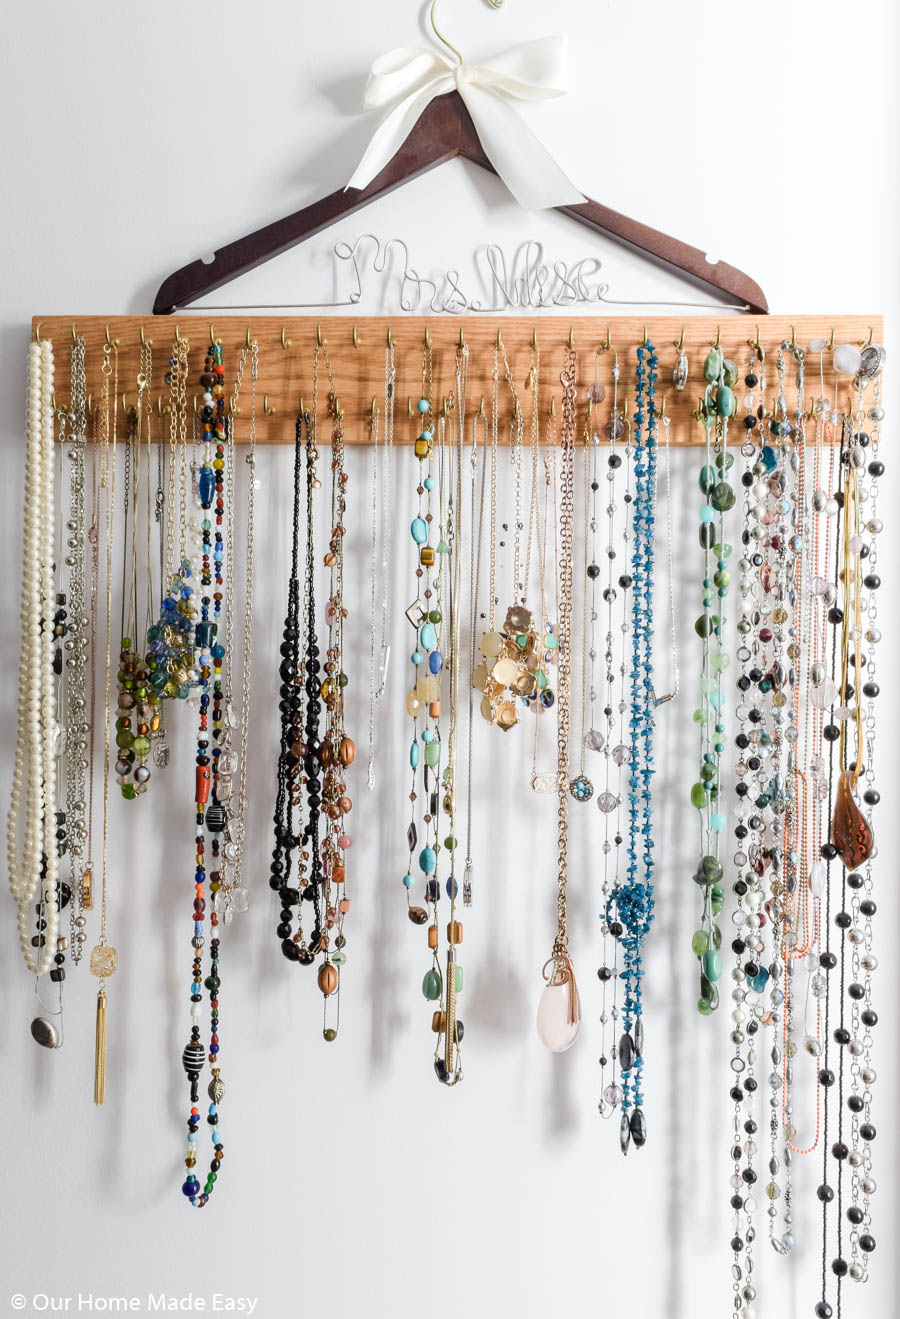 This DIY necklace rack is an easy way to organize jewelry